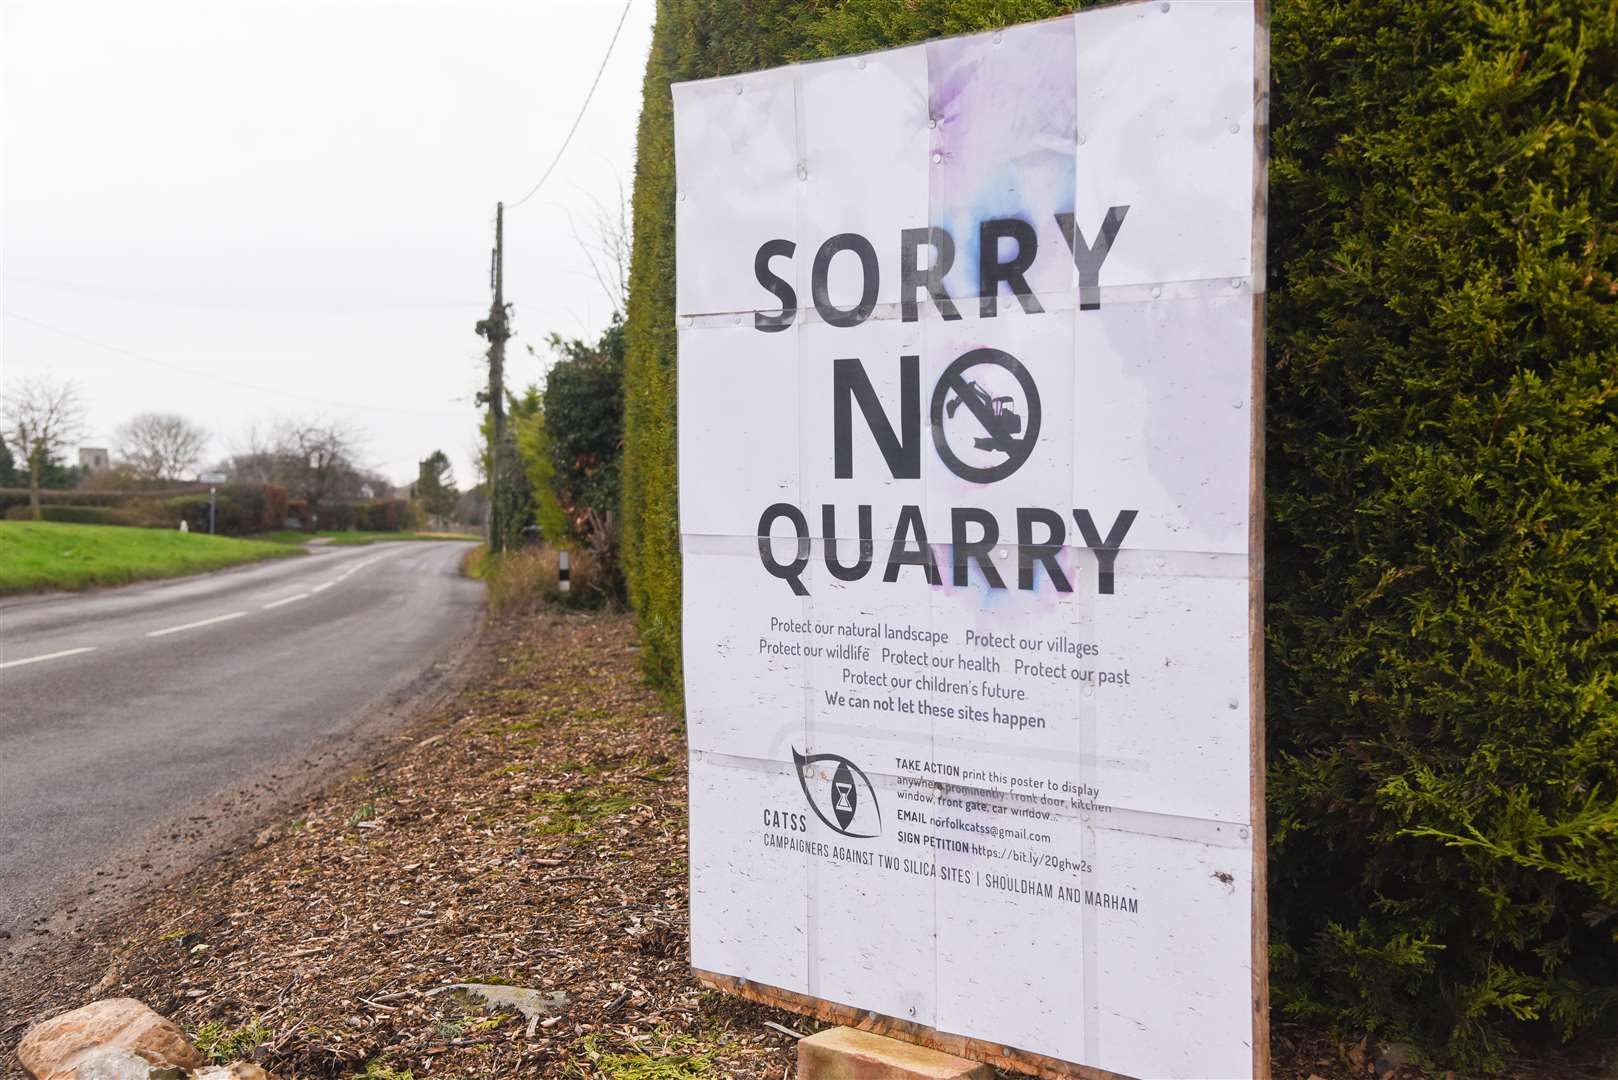 Sorry No Quarry signs have been put up by villagers in Marham